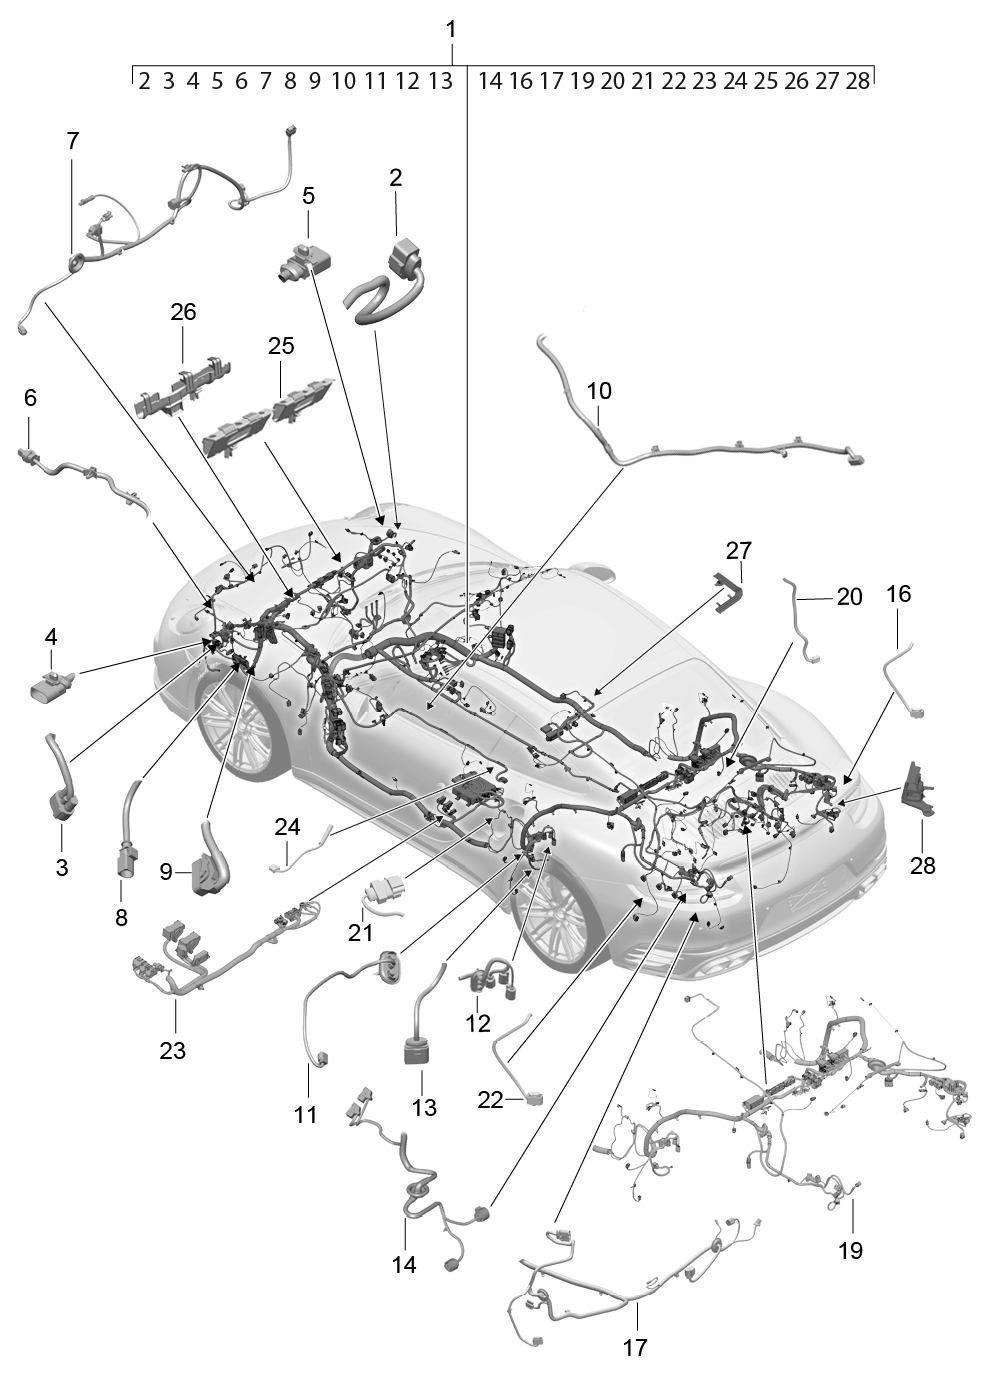 Porsche 991 Turbo 2014 2017 Sub Part Passenger Compartment 1978 Wiring Diagram Block And Schematic Diagrams Pet